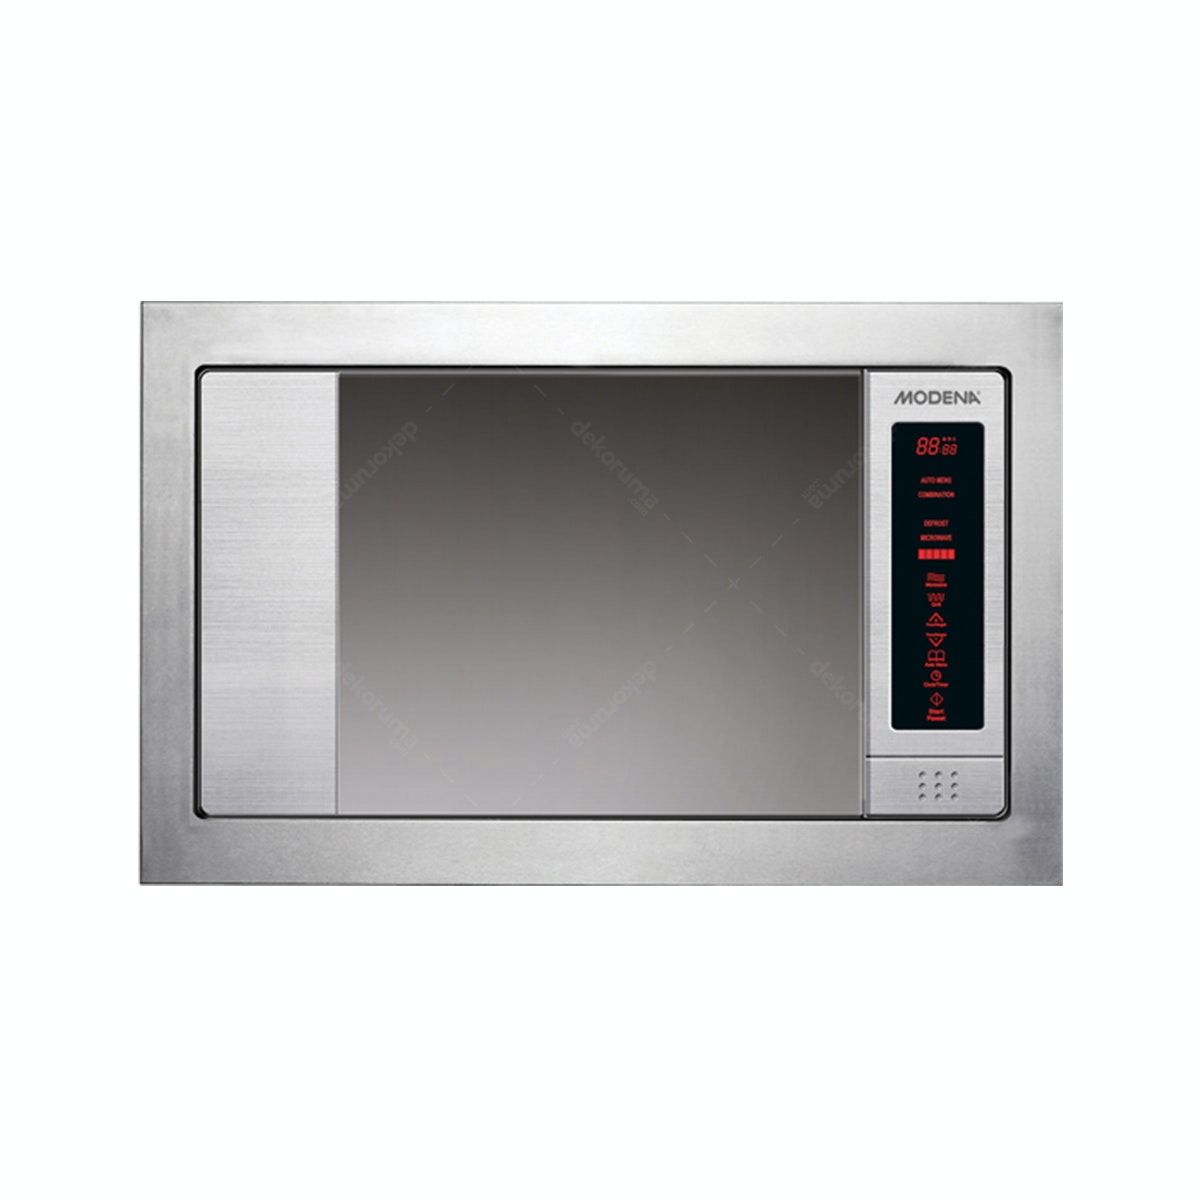 Modena Microwave Oven Tanam/Freestanding 25 Liter BUONO MG 2502